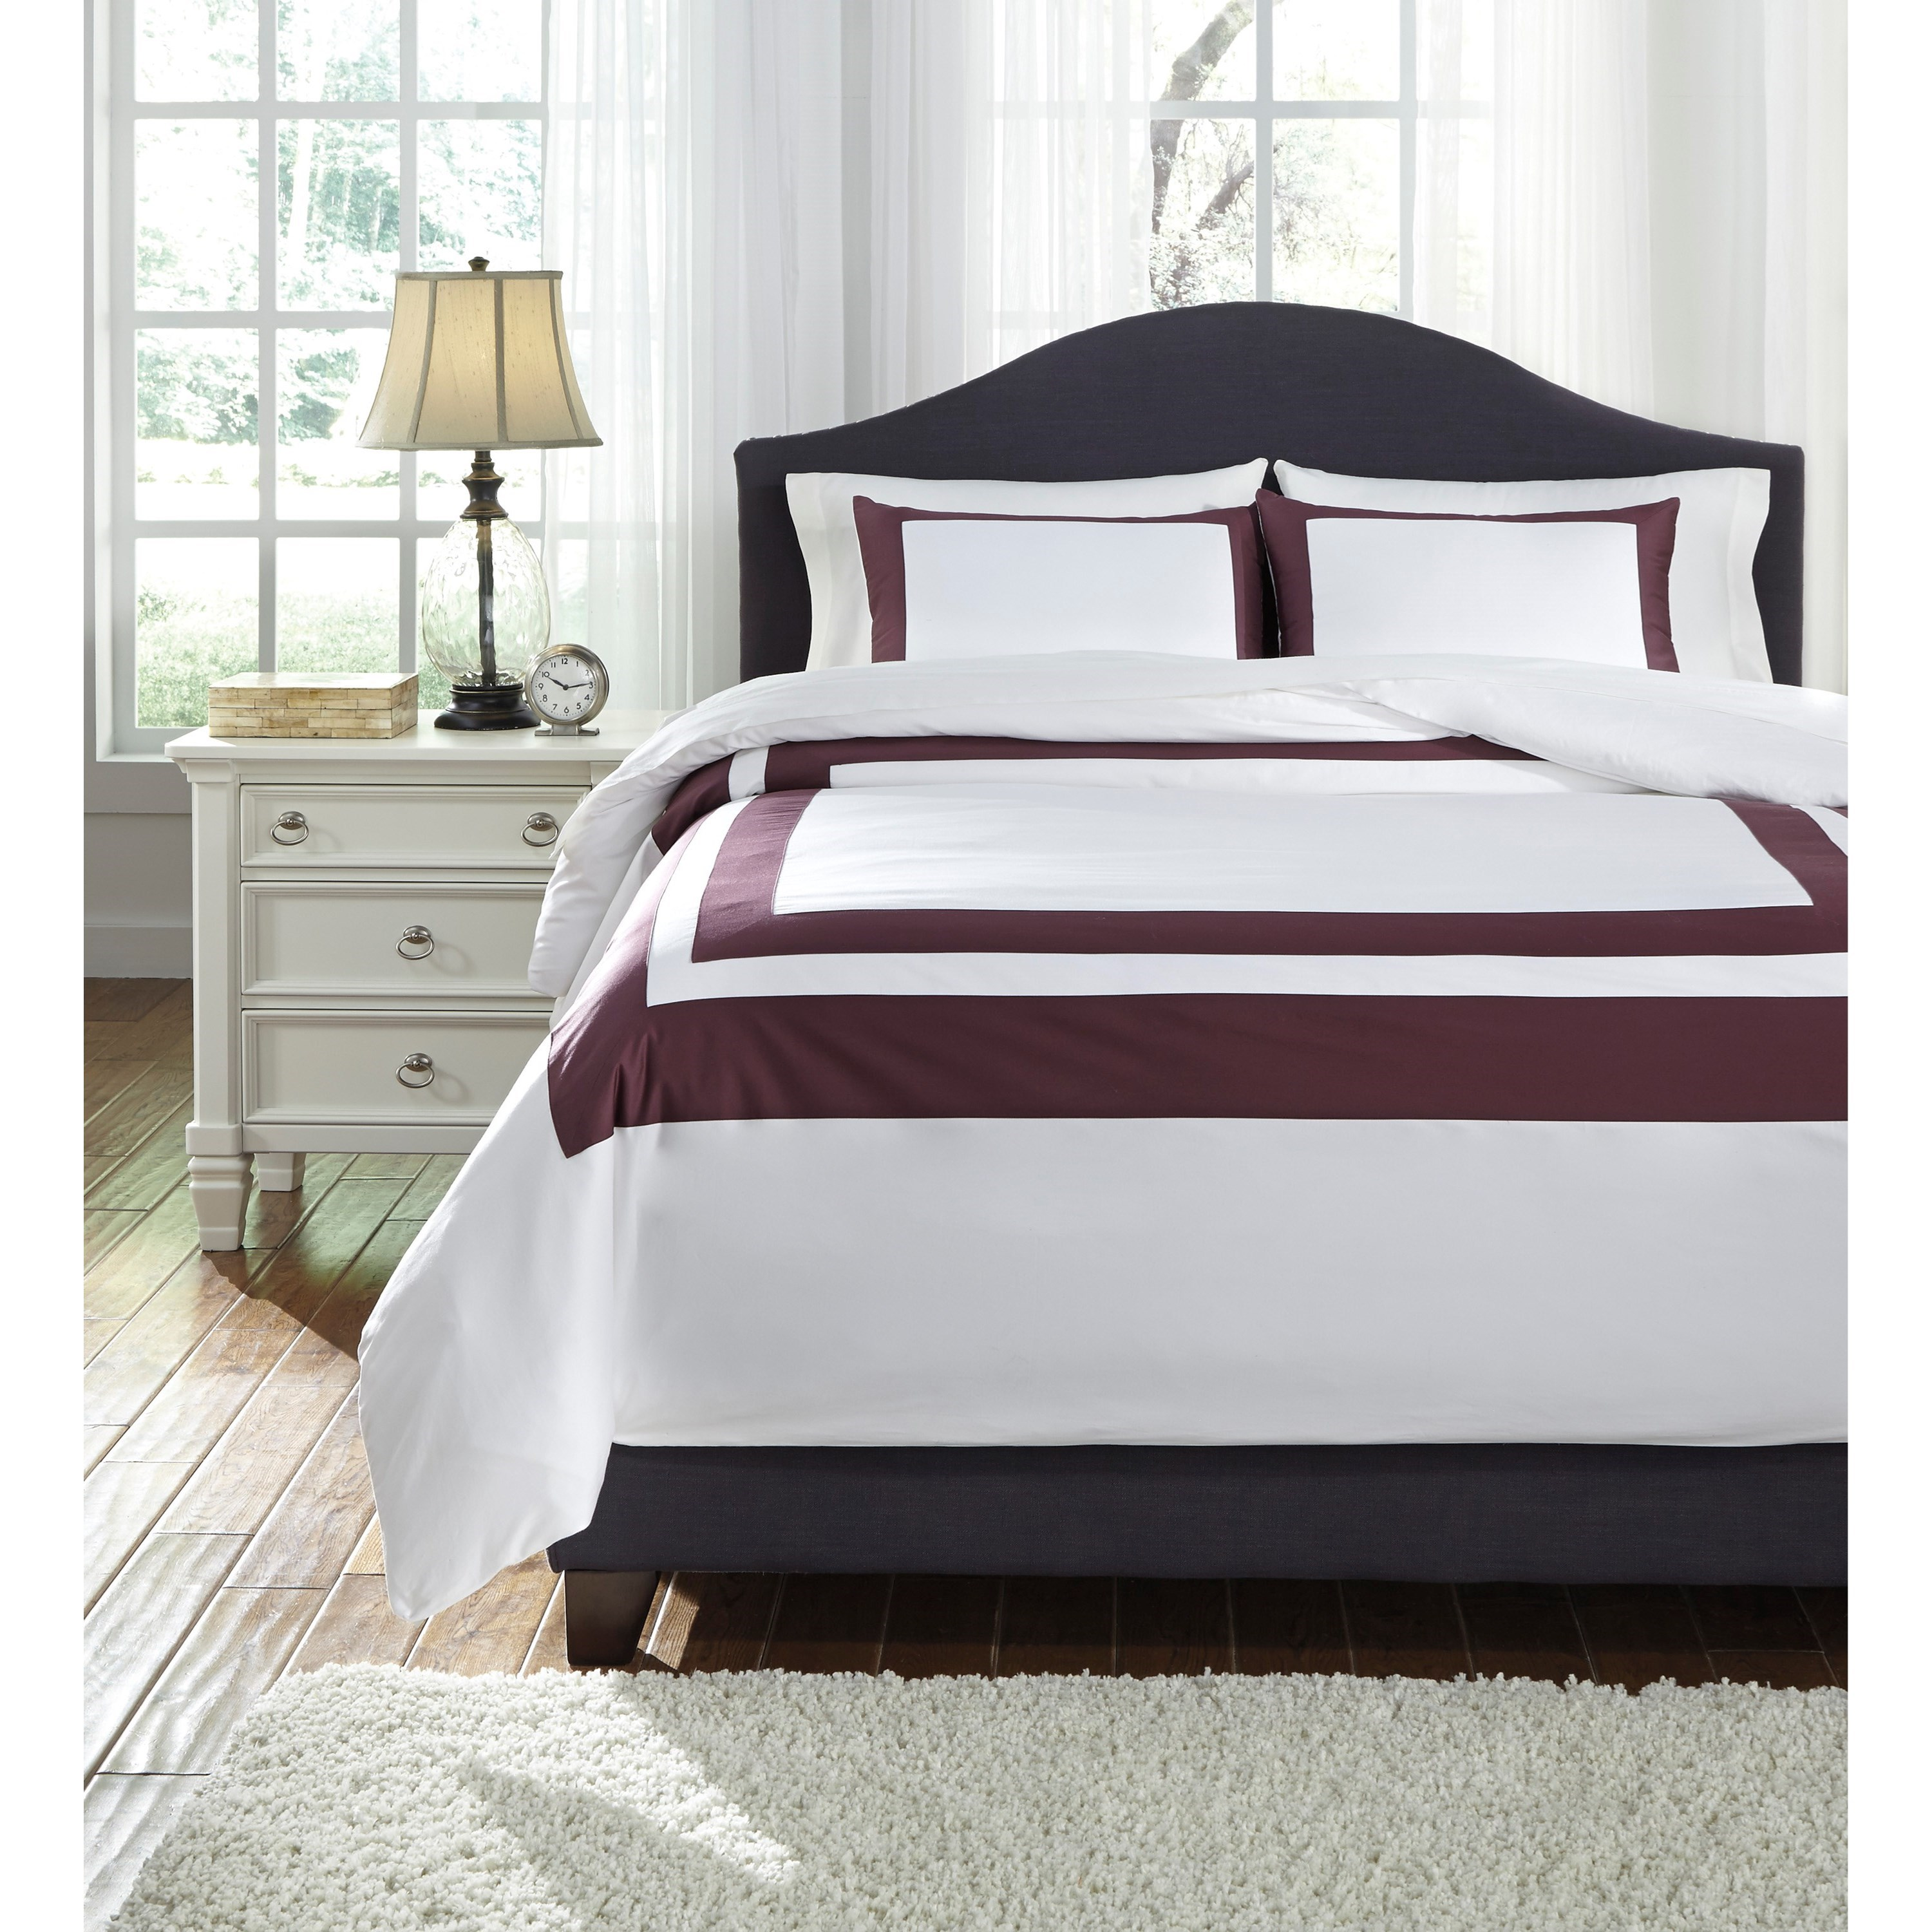 Bedding Sets Queen Daruka Duvet Cover Set by Signature Design by Ashley at Lapeer Furniture & Mattress Center